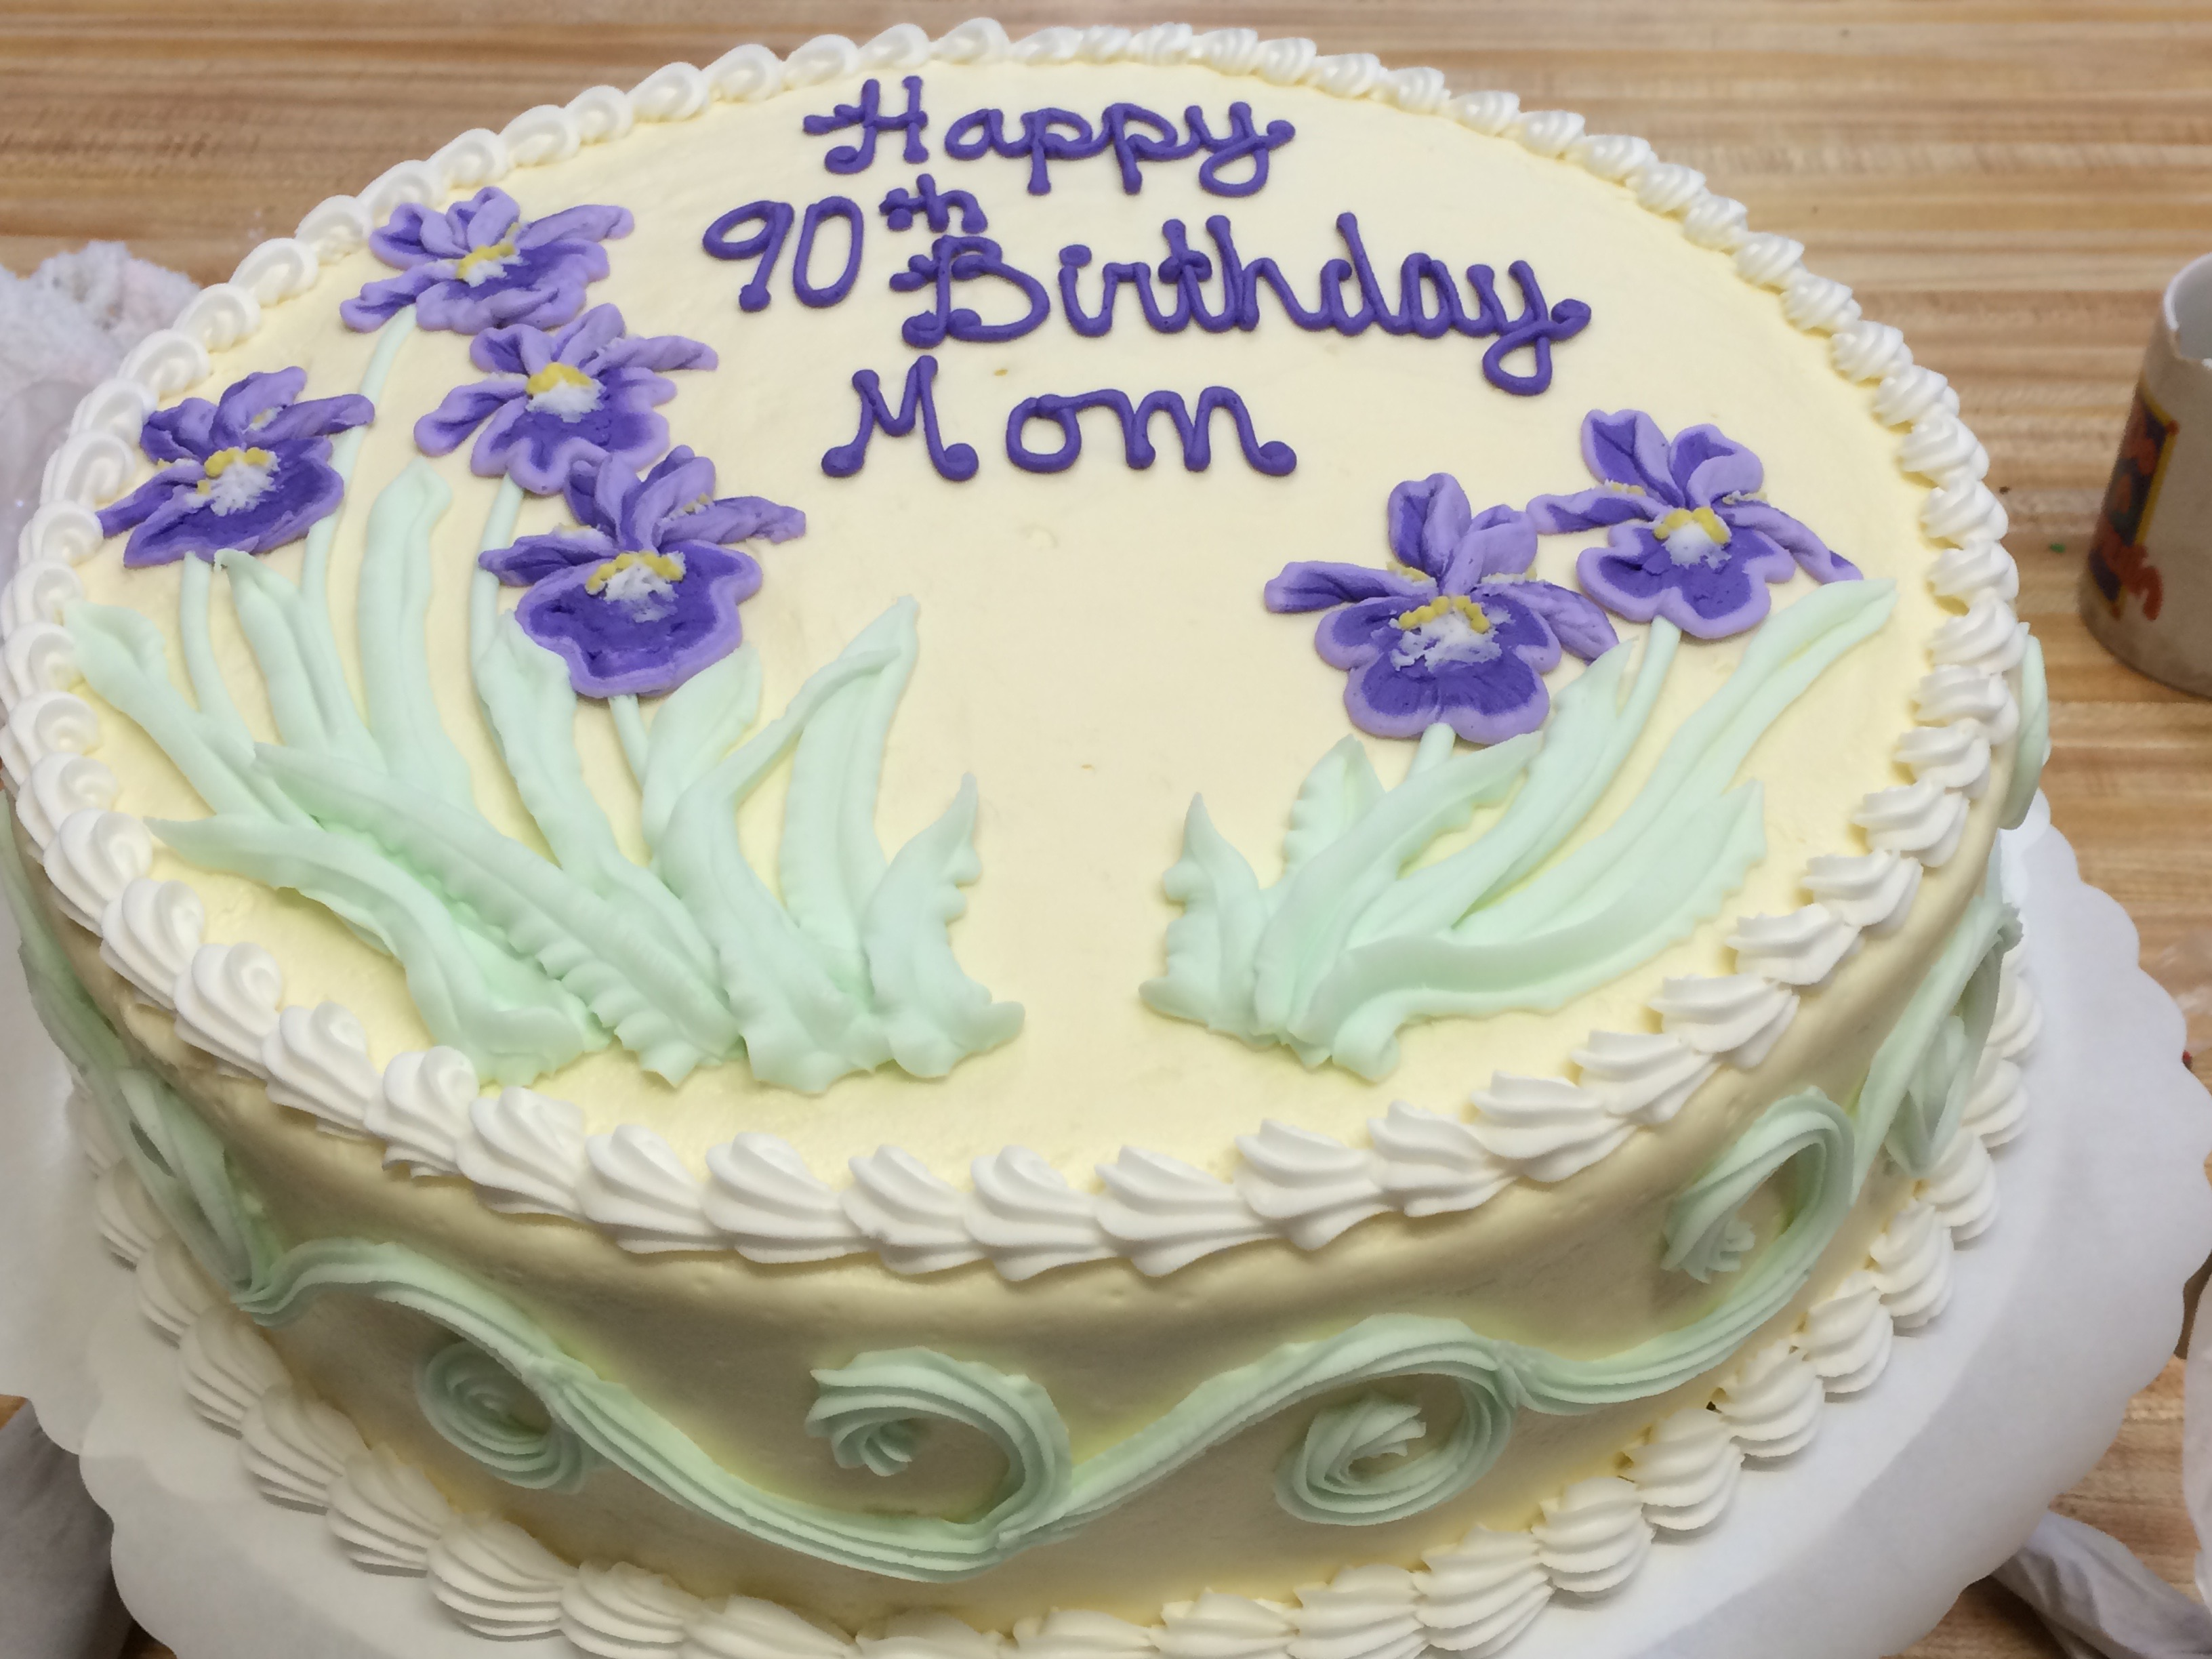 Birthday cake w/ purple Lilies 20